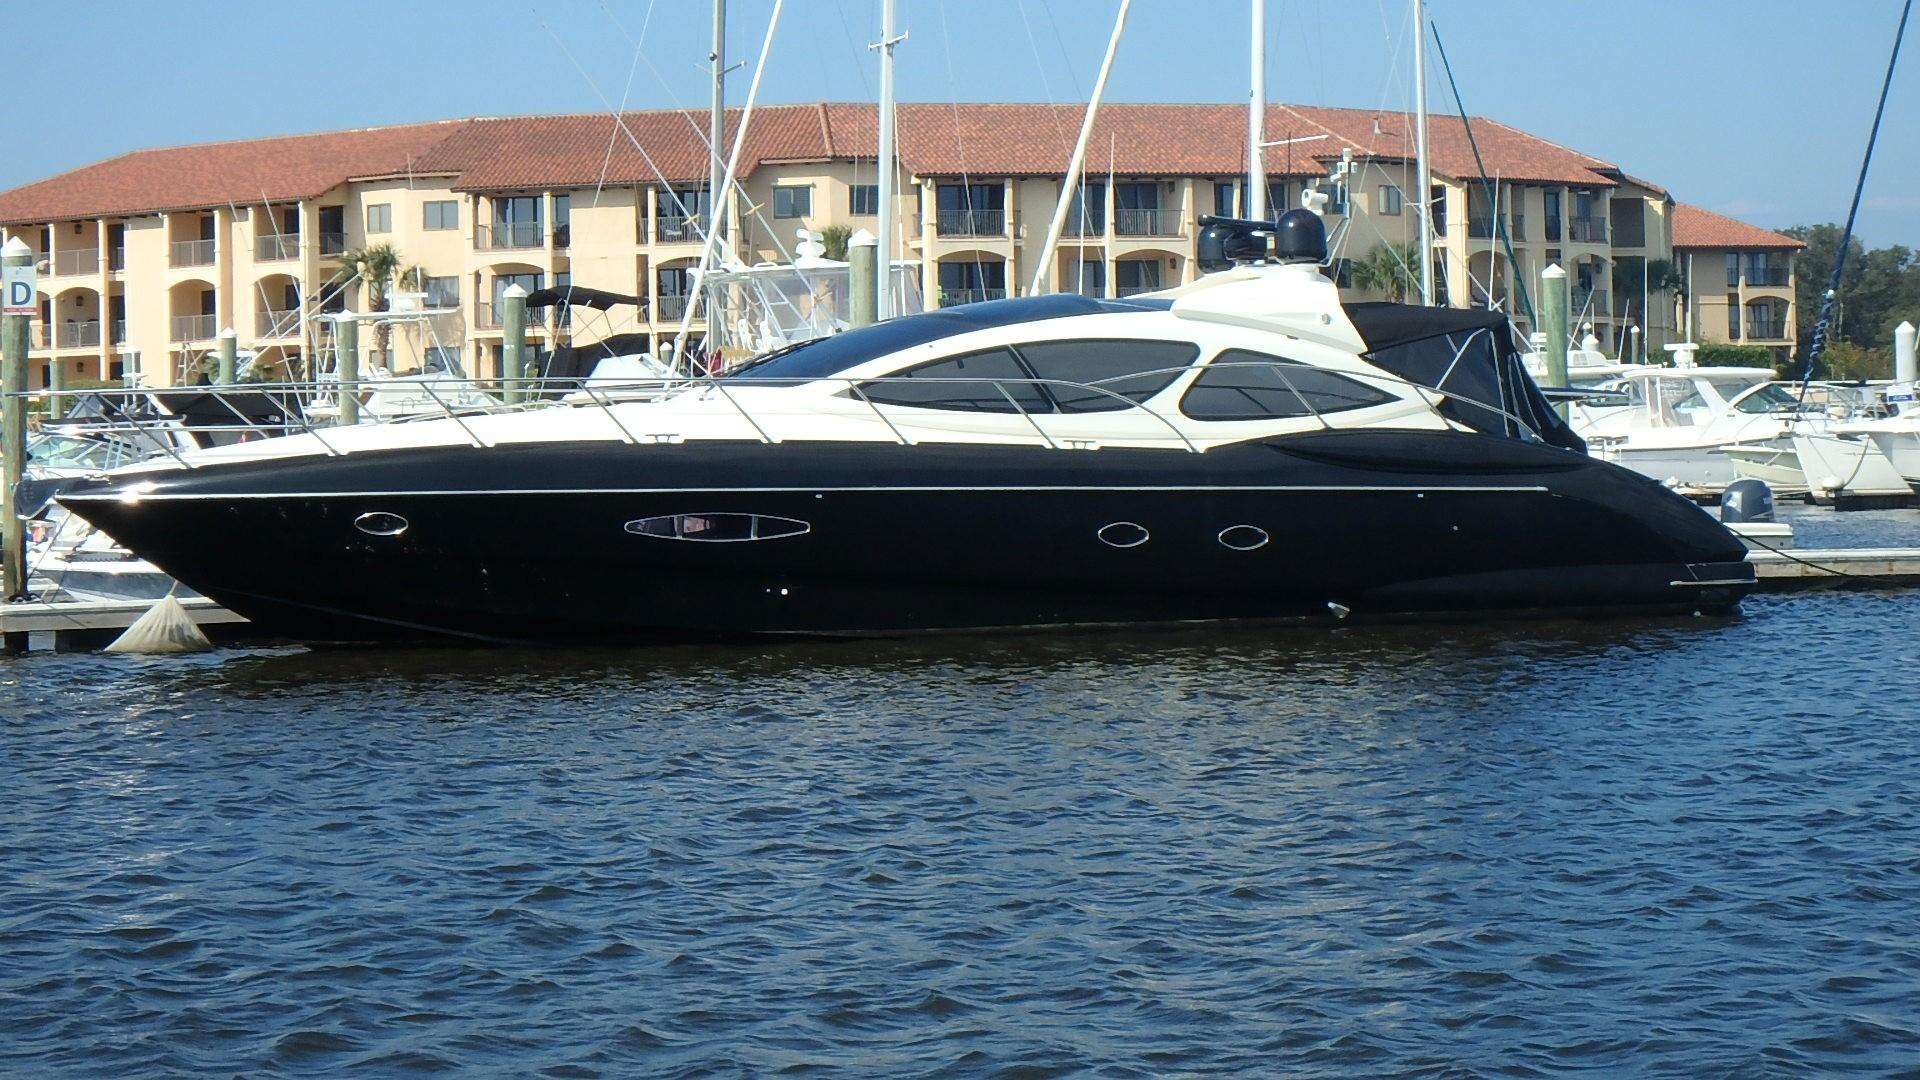 Azimut Atlantis 55 - Azumut 55S For Sale